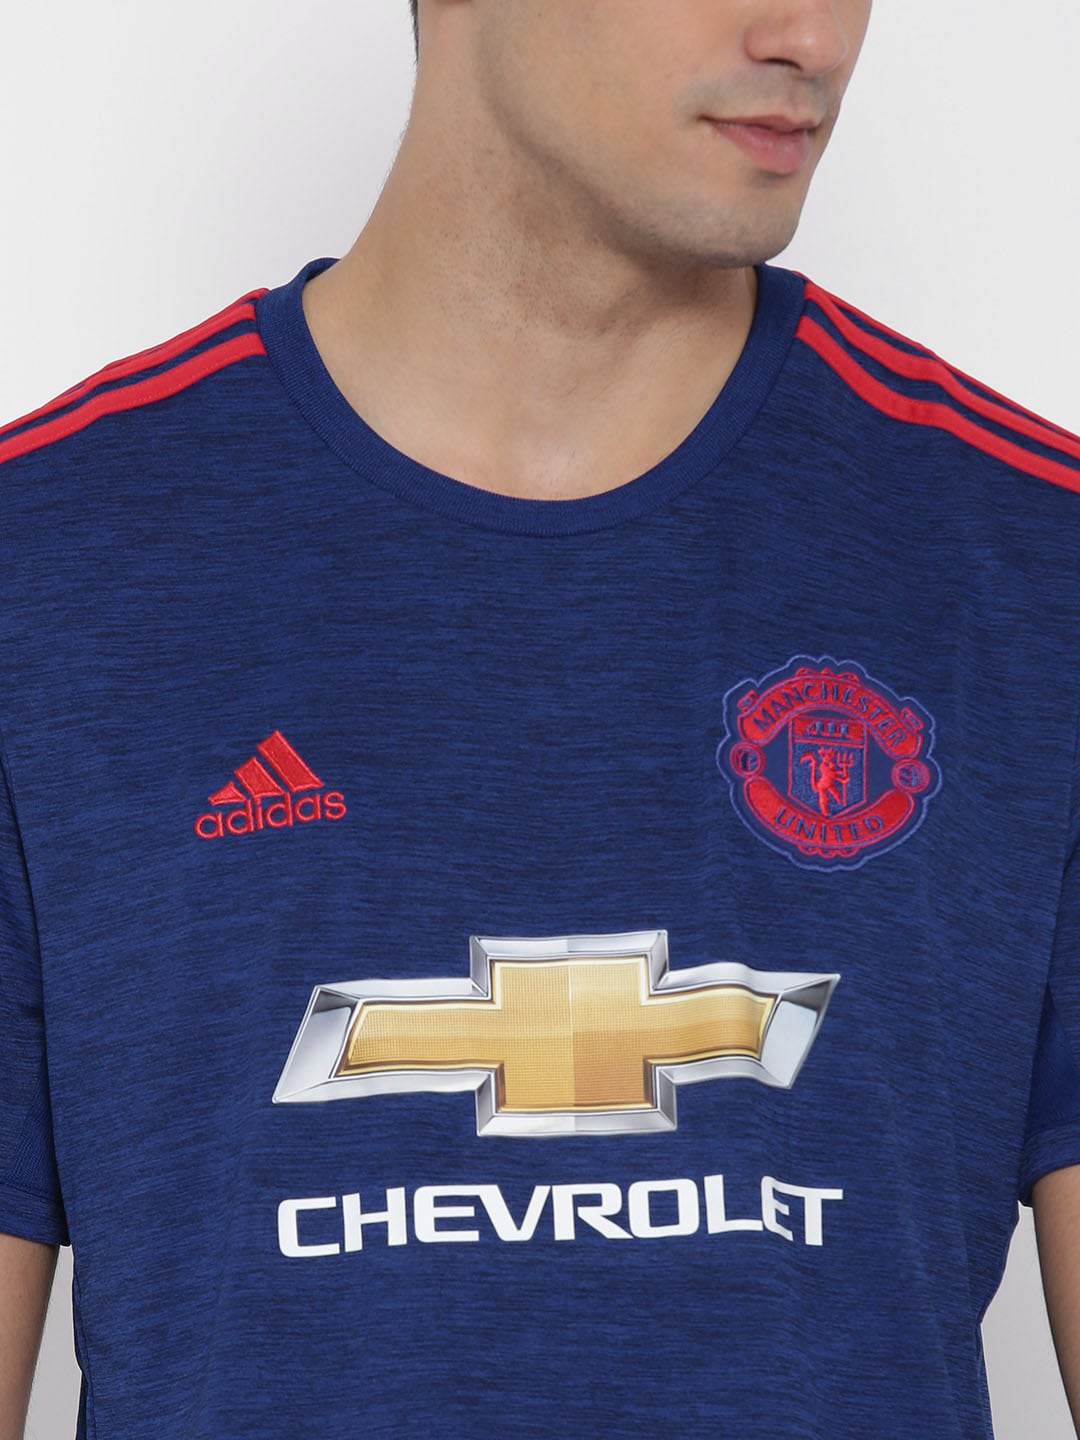 reputable site fa162 1e8ca manchester united jersey buy online